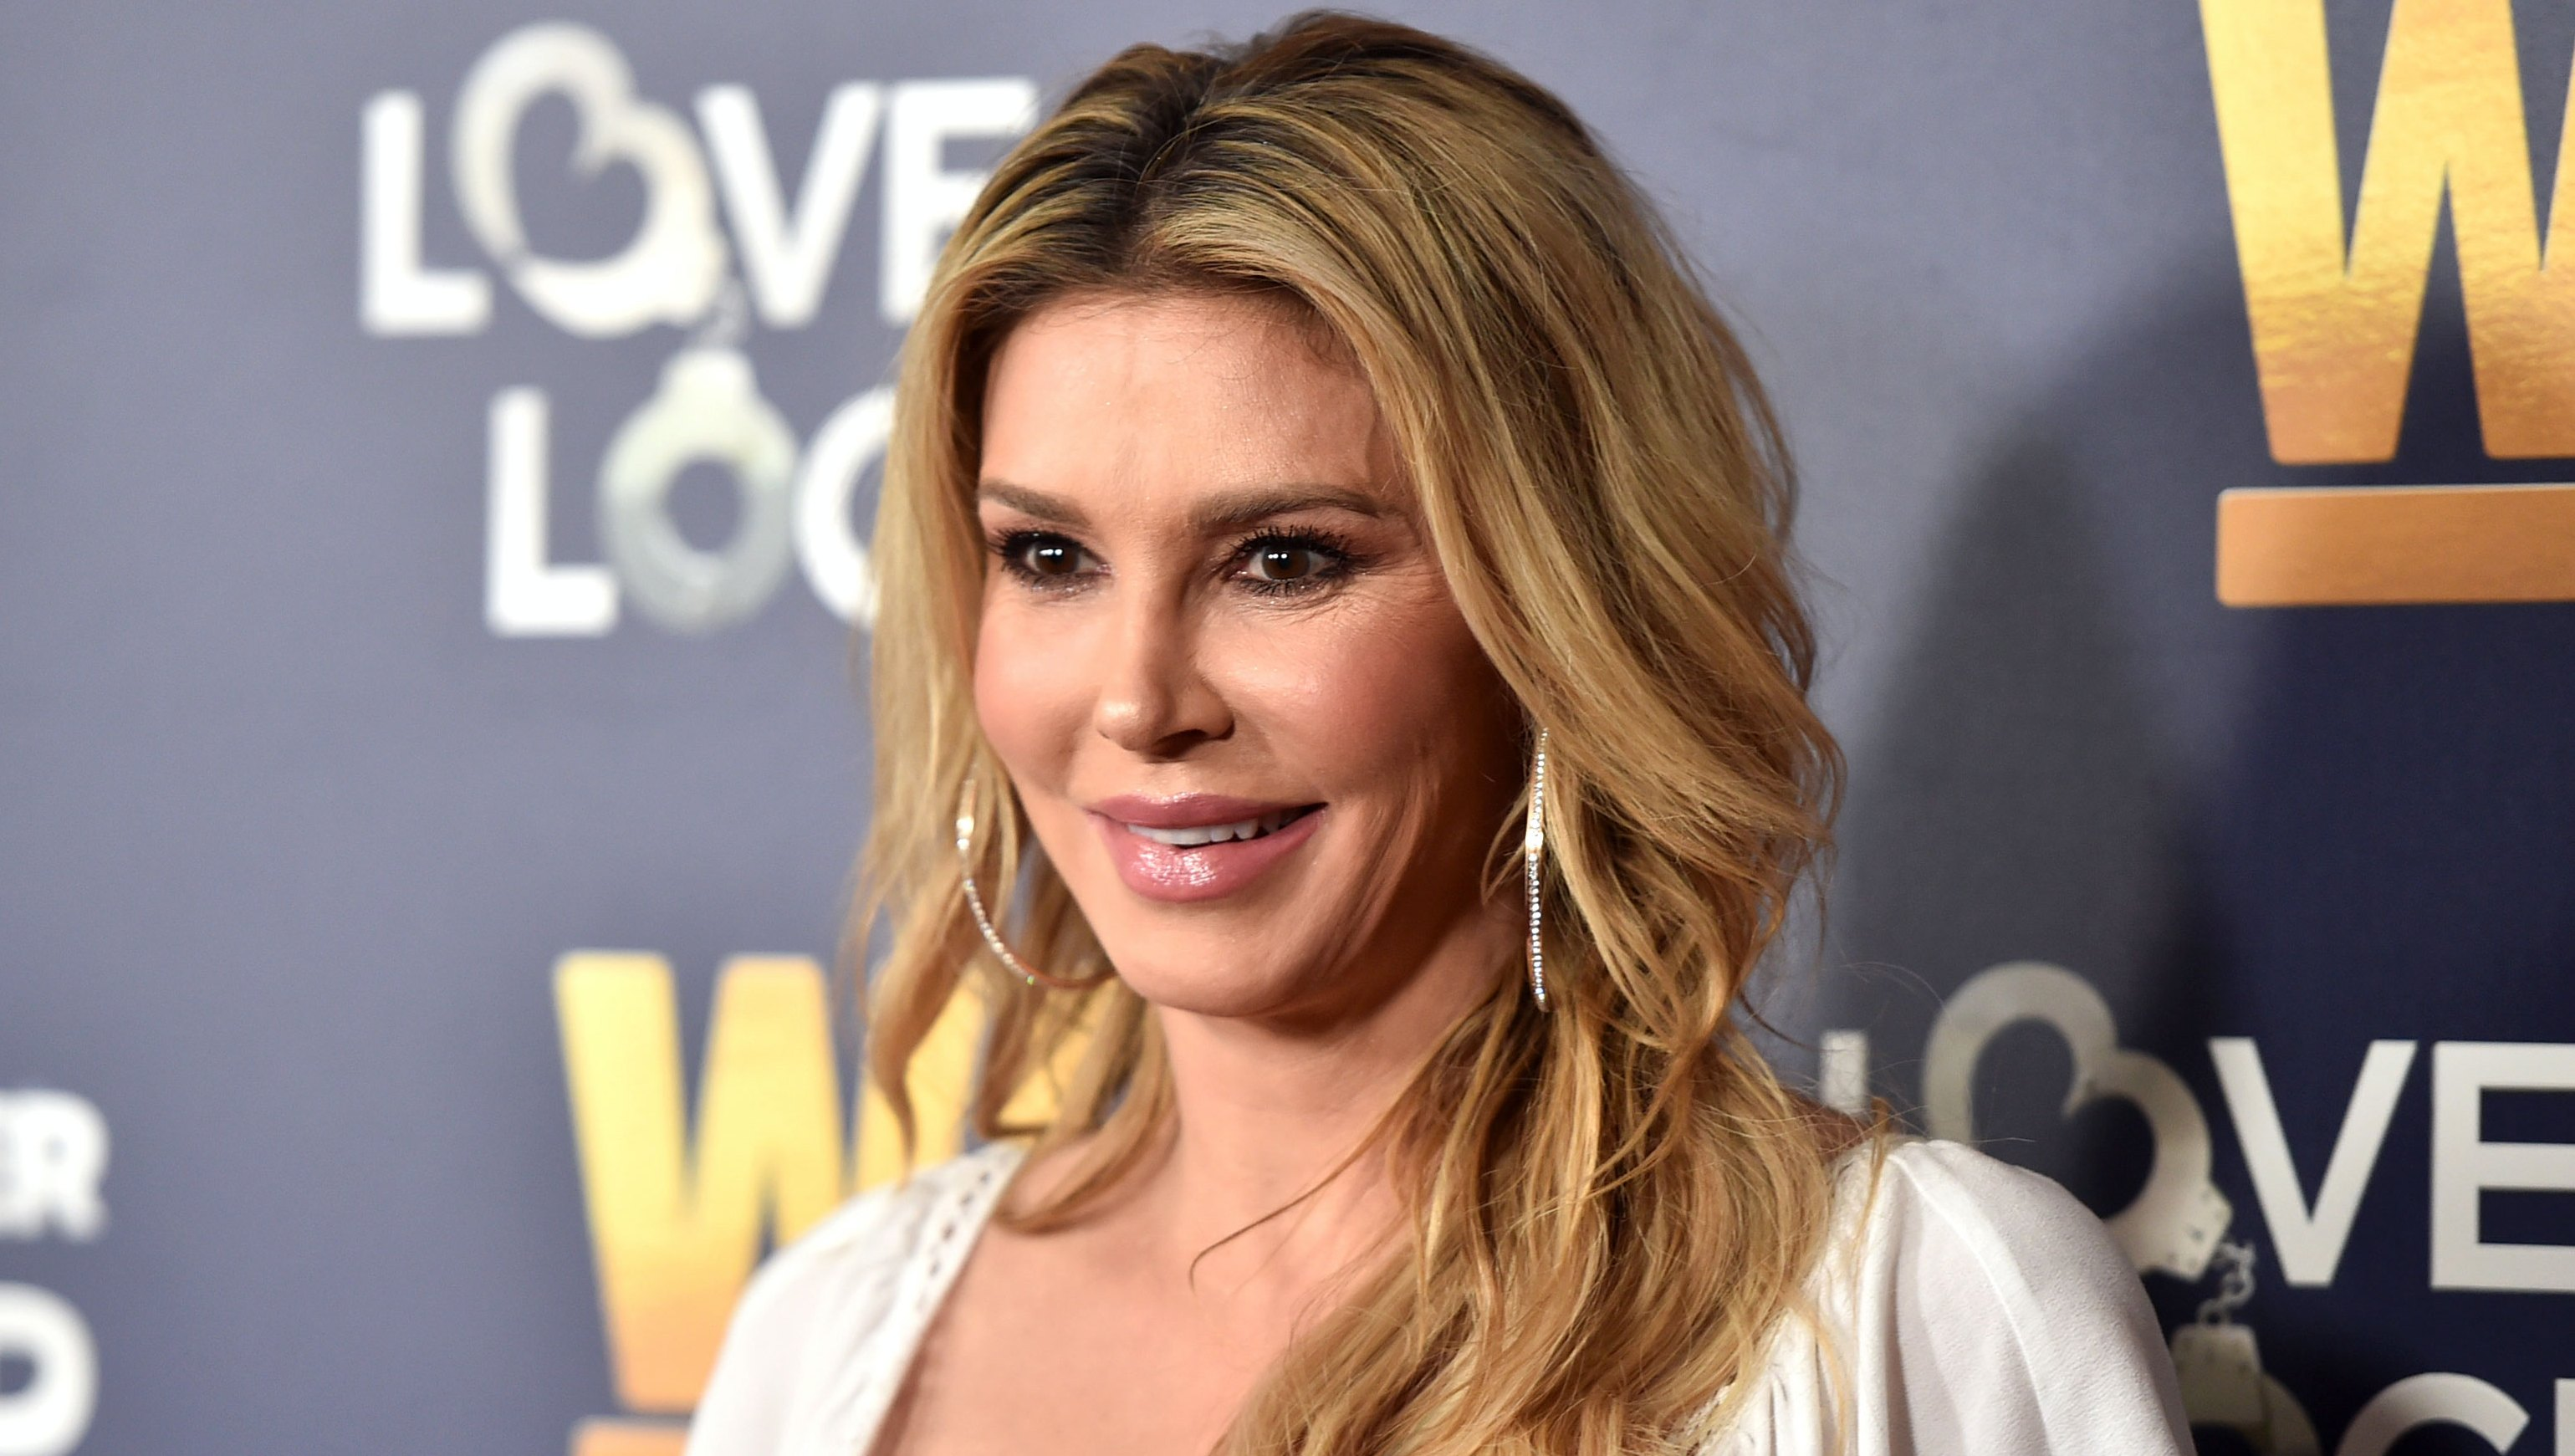 Brandi Glanville Is 'So Happy' 'RHOBH' Cast Is Slamming Lisa Vanderpump